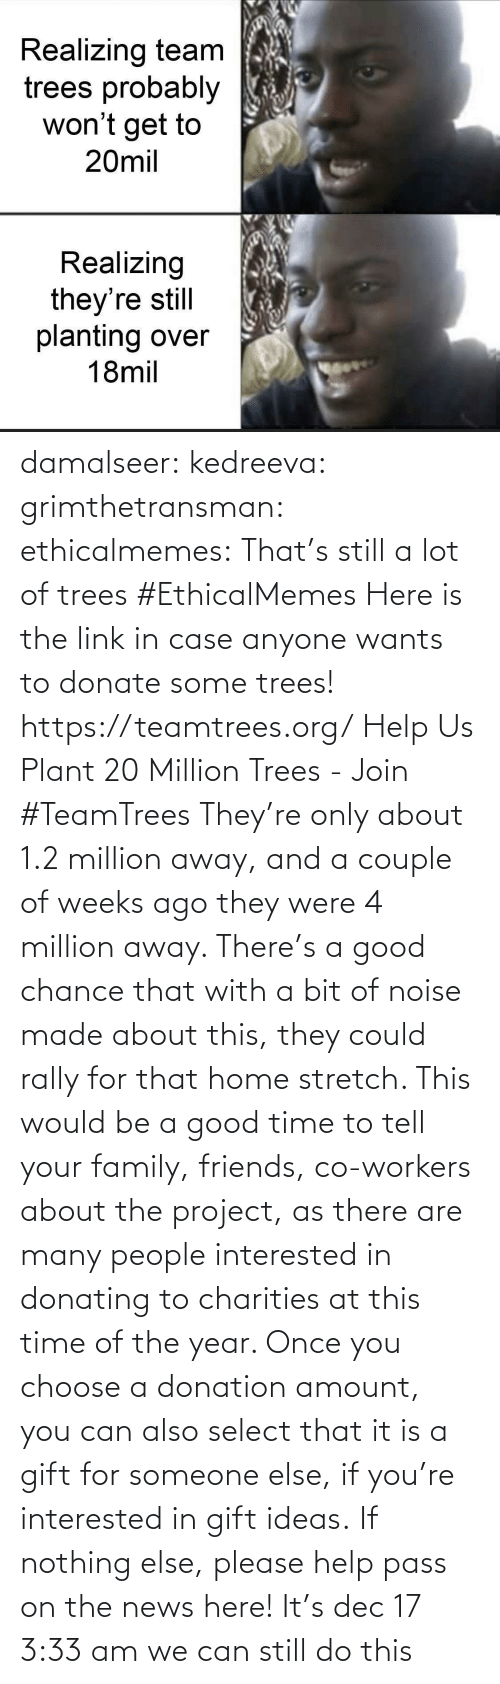 Umblr: Realizing team  trees probably  won't get to  20mil  Realizing  they're still  planting over  18mil damalseer:  kedreeva: grimthetransman:  ethicalmemes:  That's still a lot of trees #EthicalMemes   Here is the link in case anyone wants to donate some trees!  https://teamtrees.org/ Help Us Plant 20 Million Trees - Join #TeamTrees  They're only about 1.2 million away, and a couple of weeks ago they were 4 million away. There's a good chance that with a bit of noise made about this, they could rally for that home stretch. This would be a good time to tell your family, friends, co-workers about the project, as there are many people interested in donating to charities at this time of the year. Once you choose a donation amount, you can also select that it is a gift for someone else, if you're interested in gift ideas. If nothing else, please help pass on the news here!    It's dec 17 3:33 am we can still do this